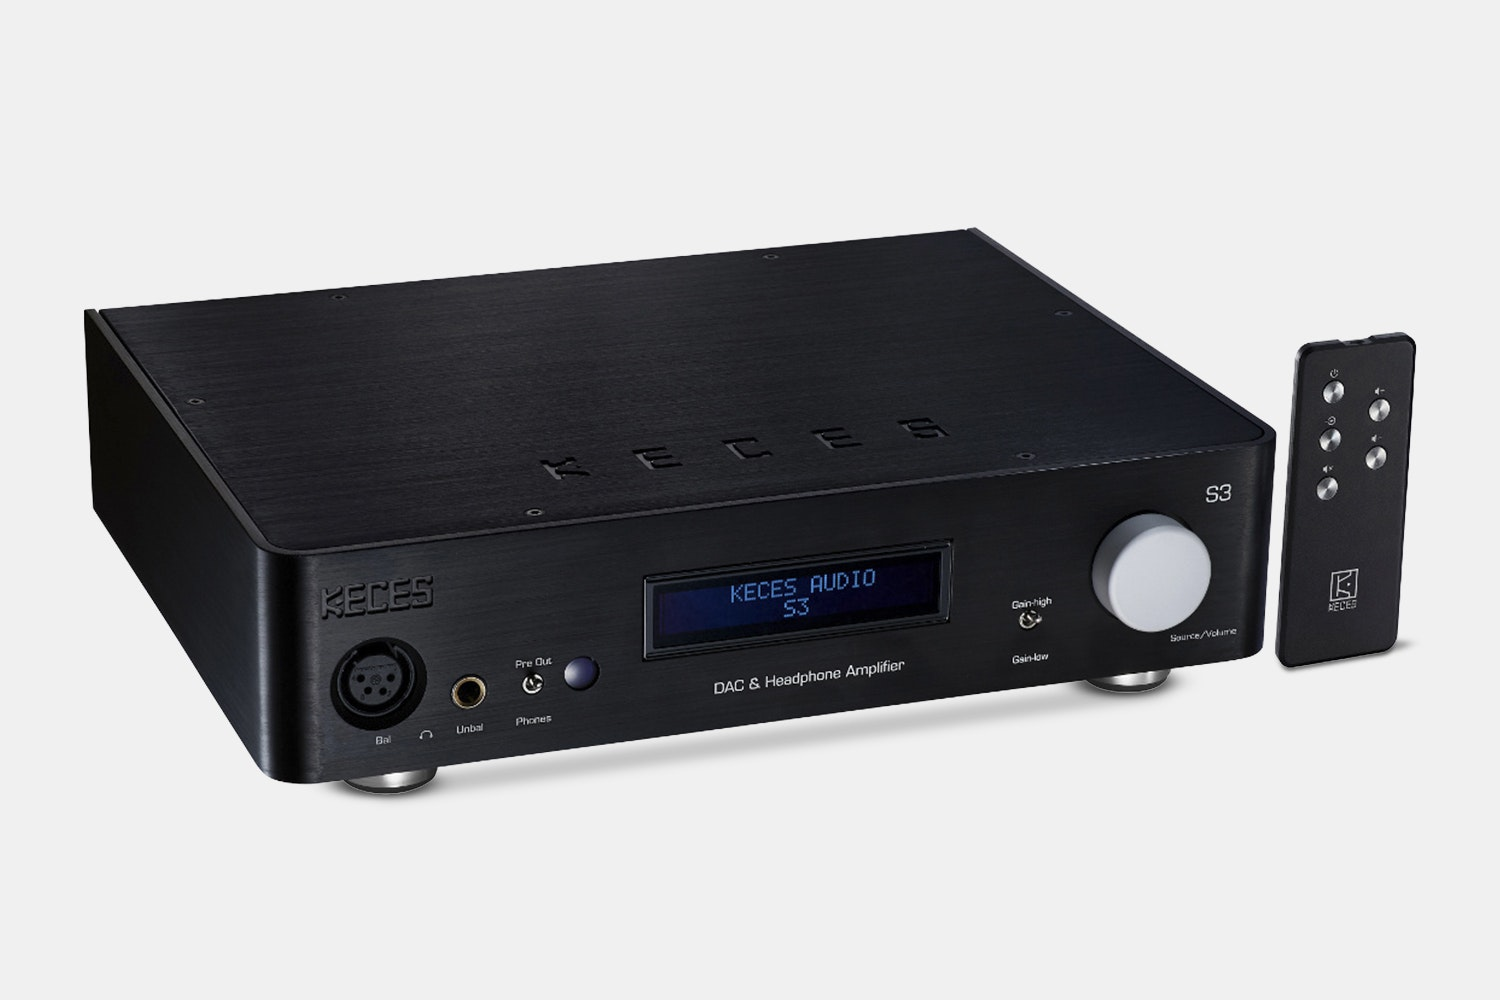 Keces S-3 Balanced DAC/Amp